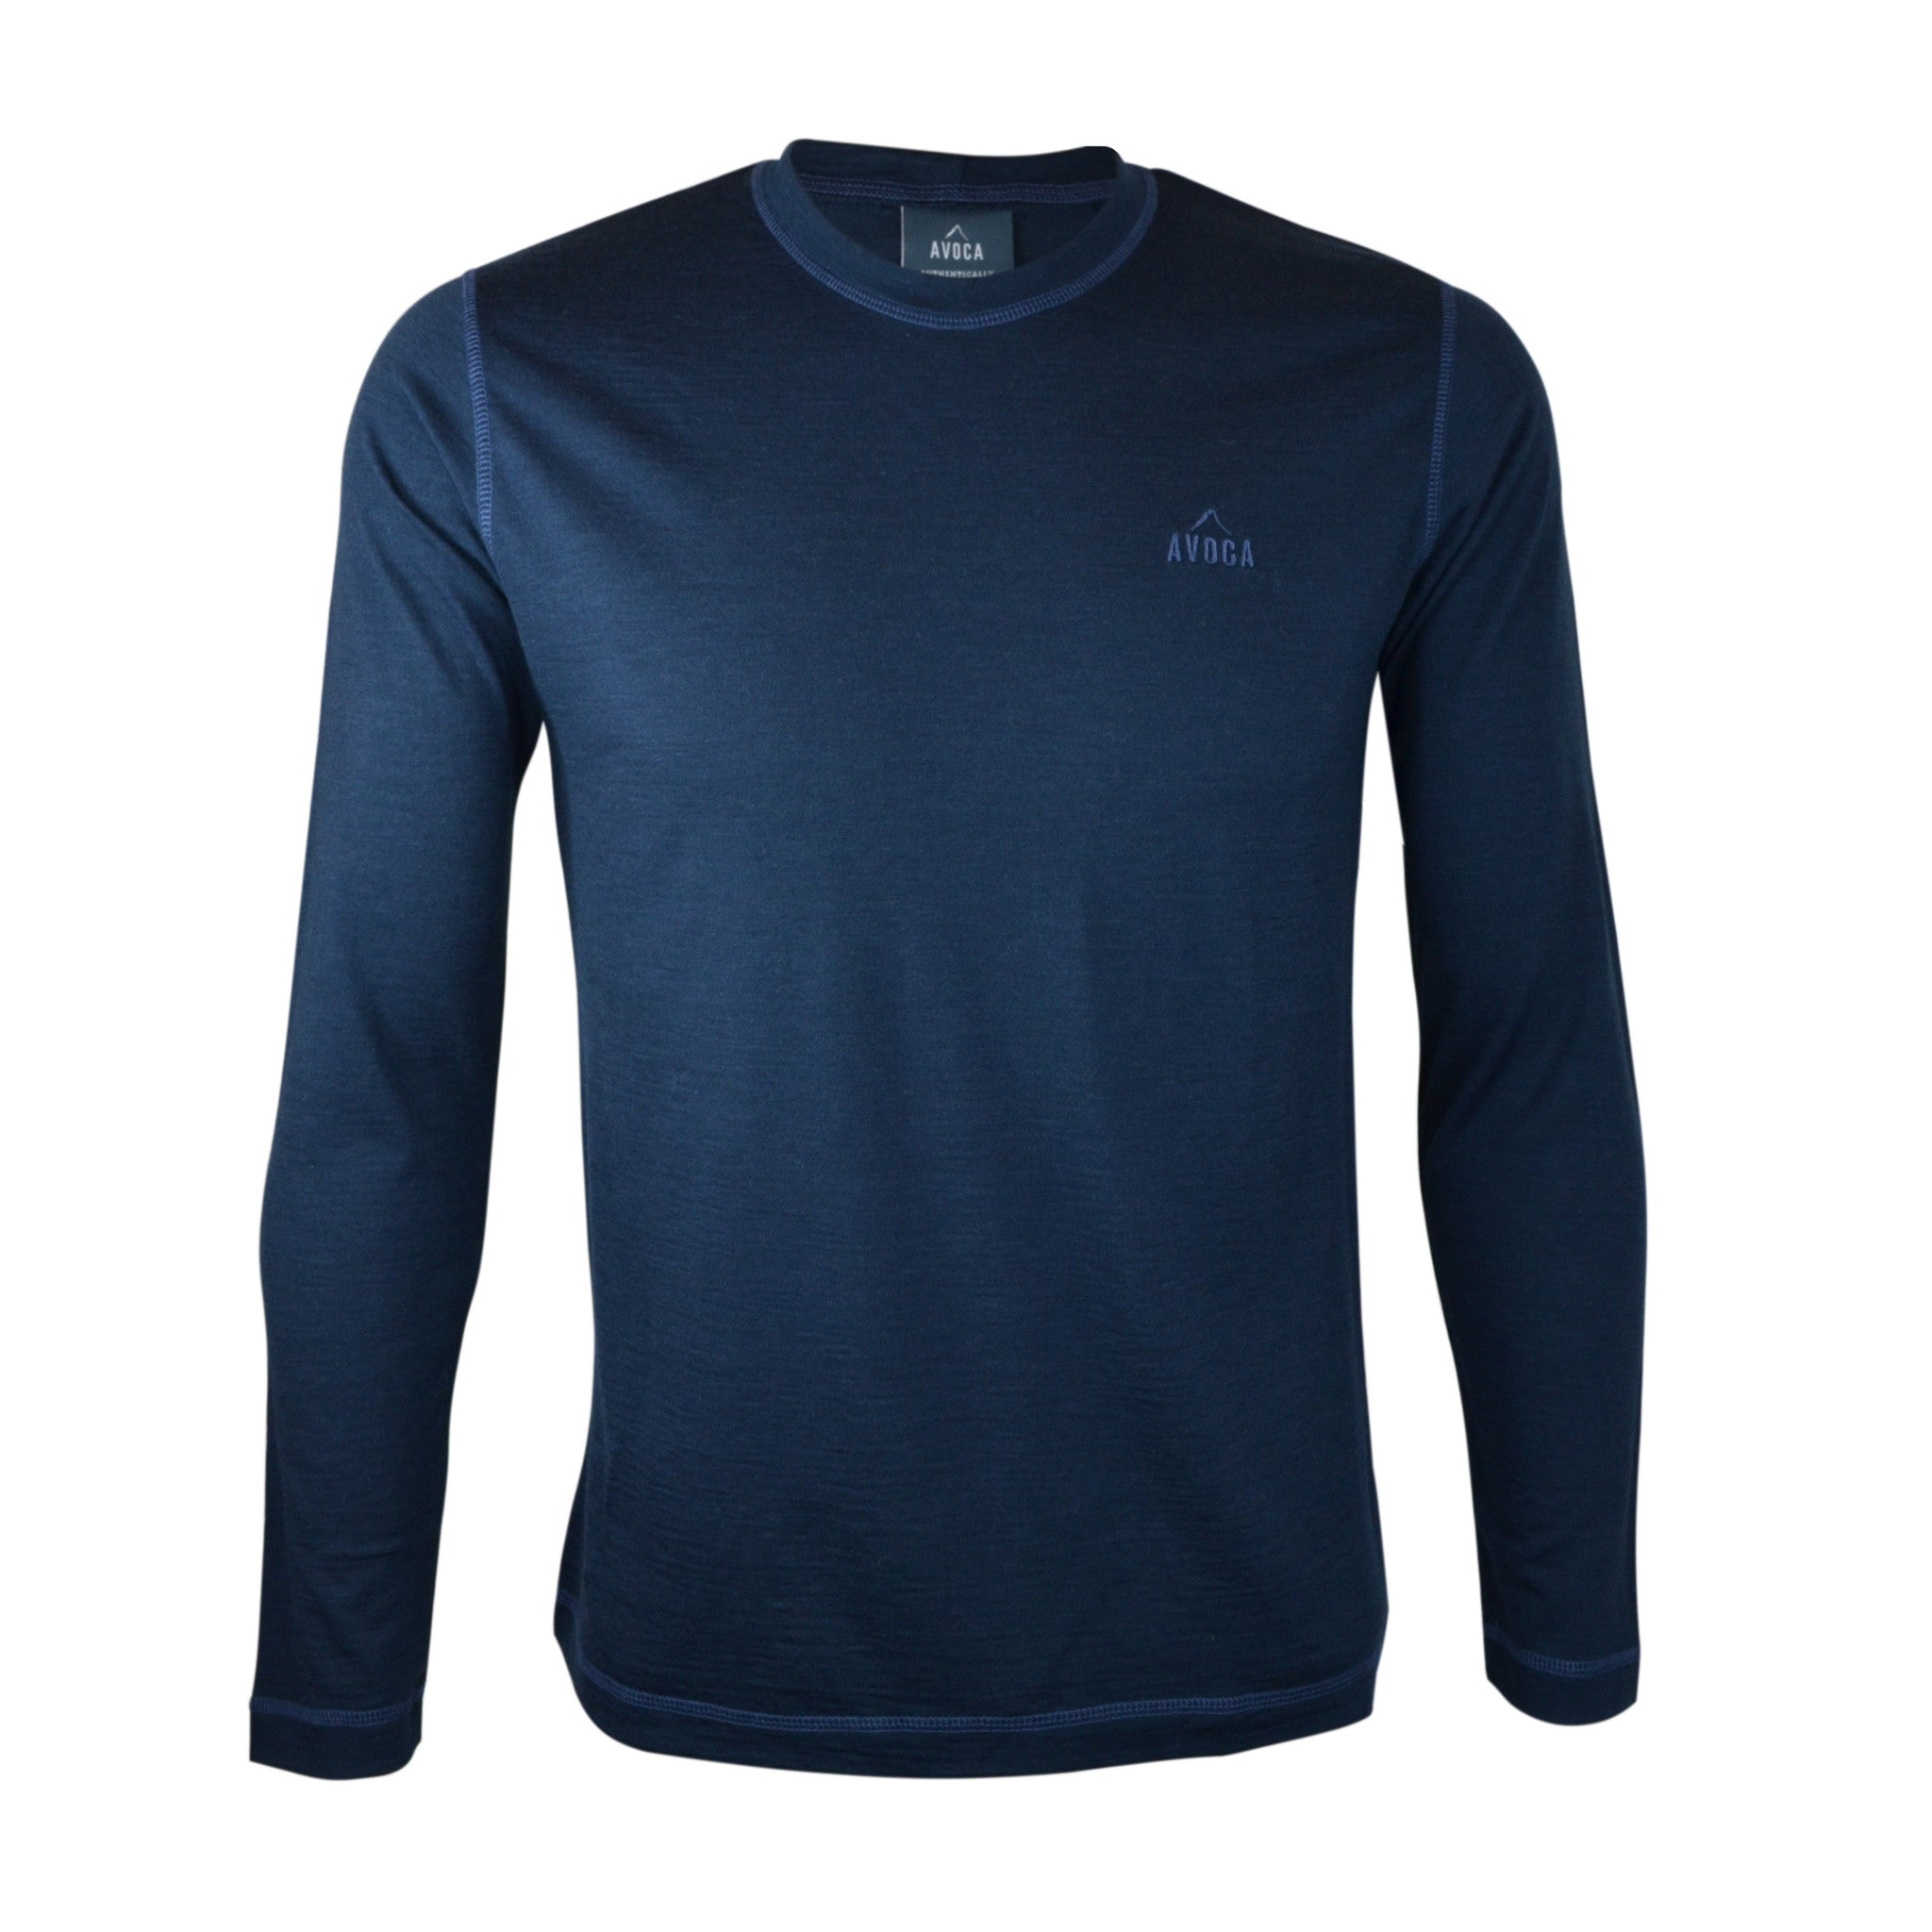 Merino Active Long-Sleeved Top